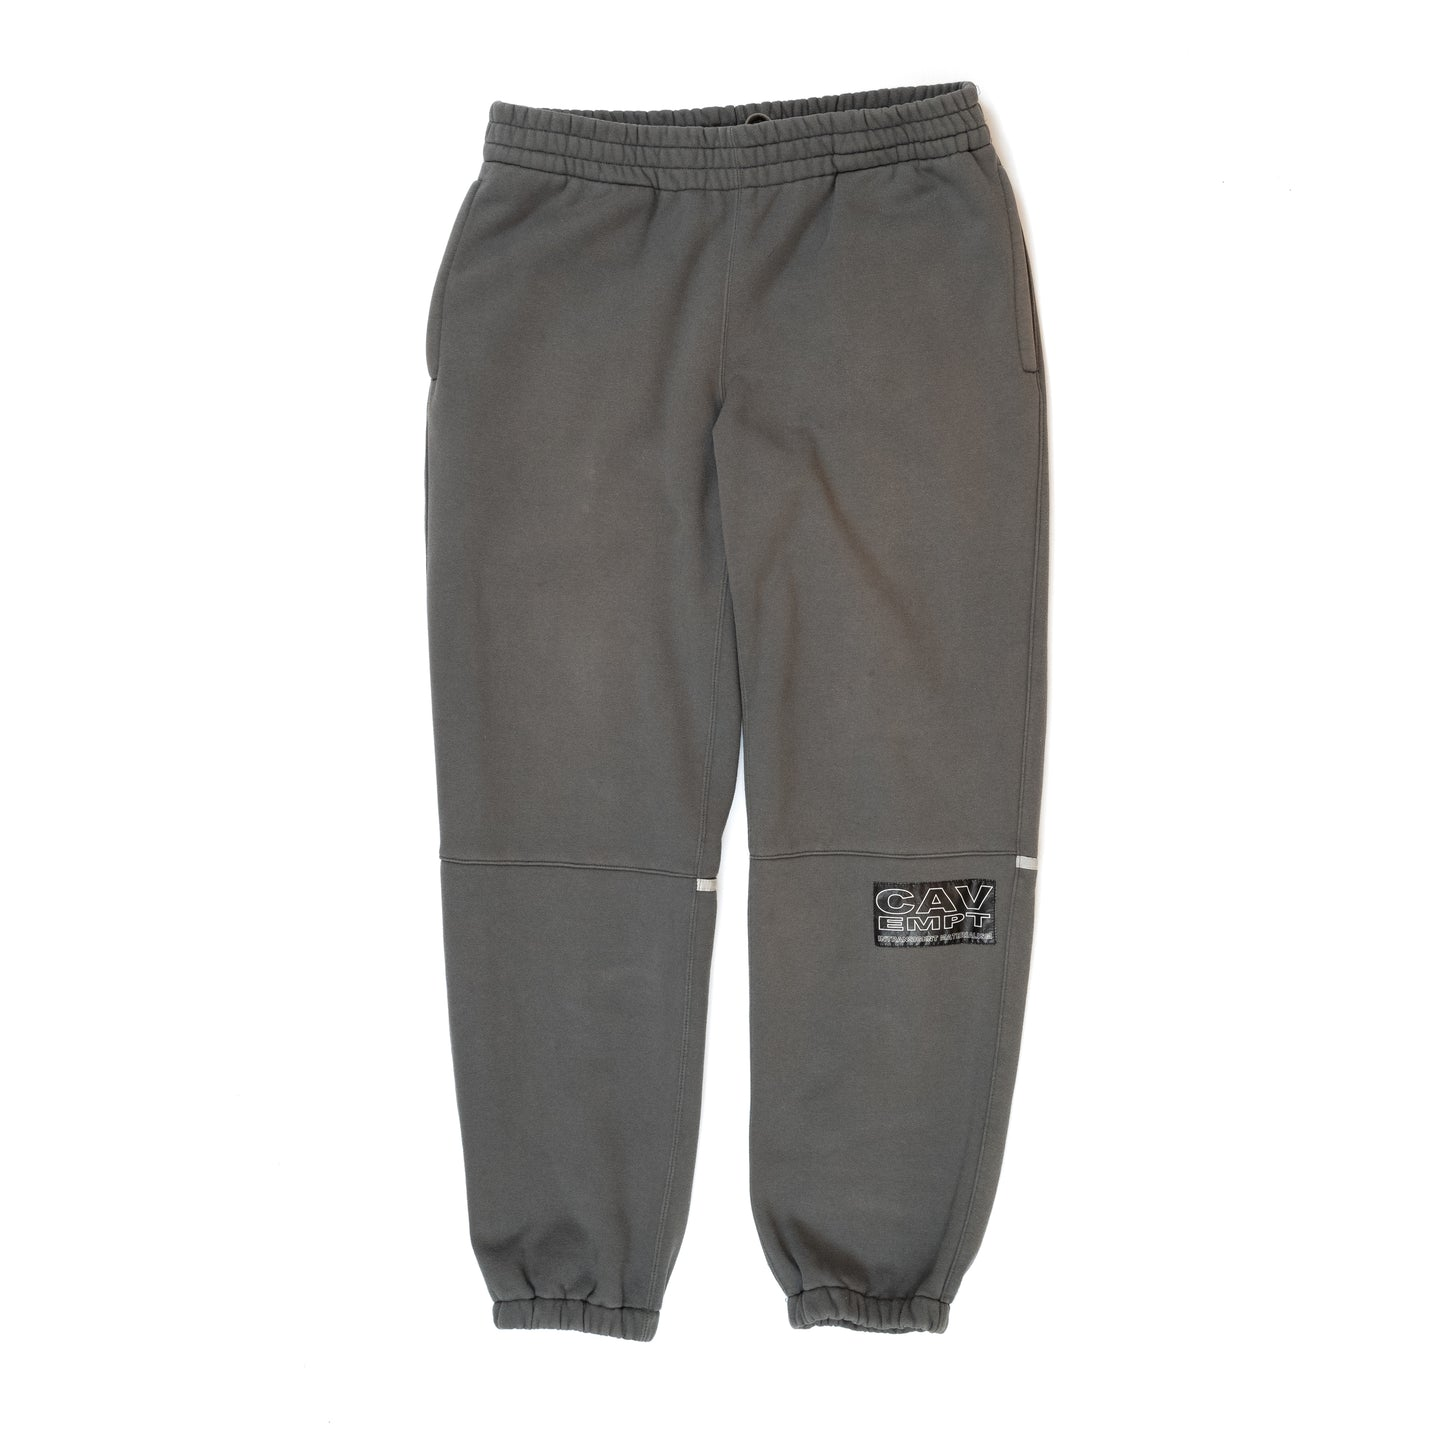 Cav Empt 'Intransigent Materialism' Jog Pants